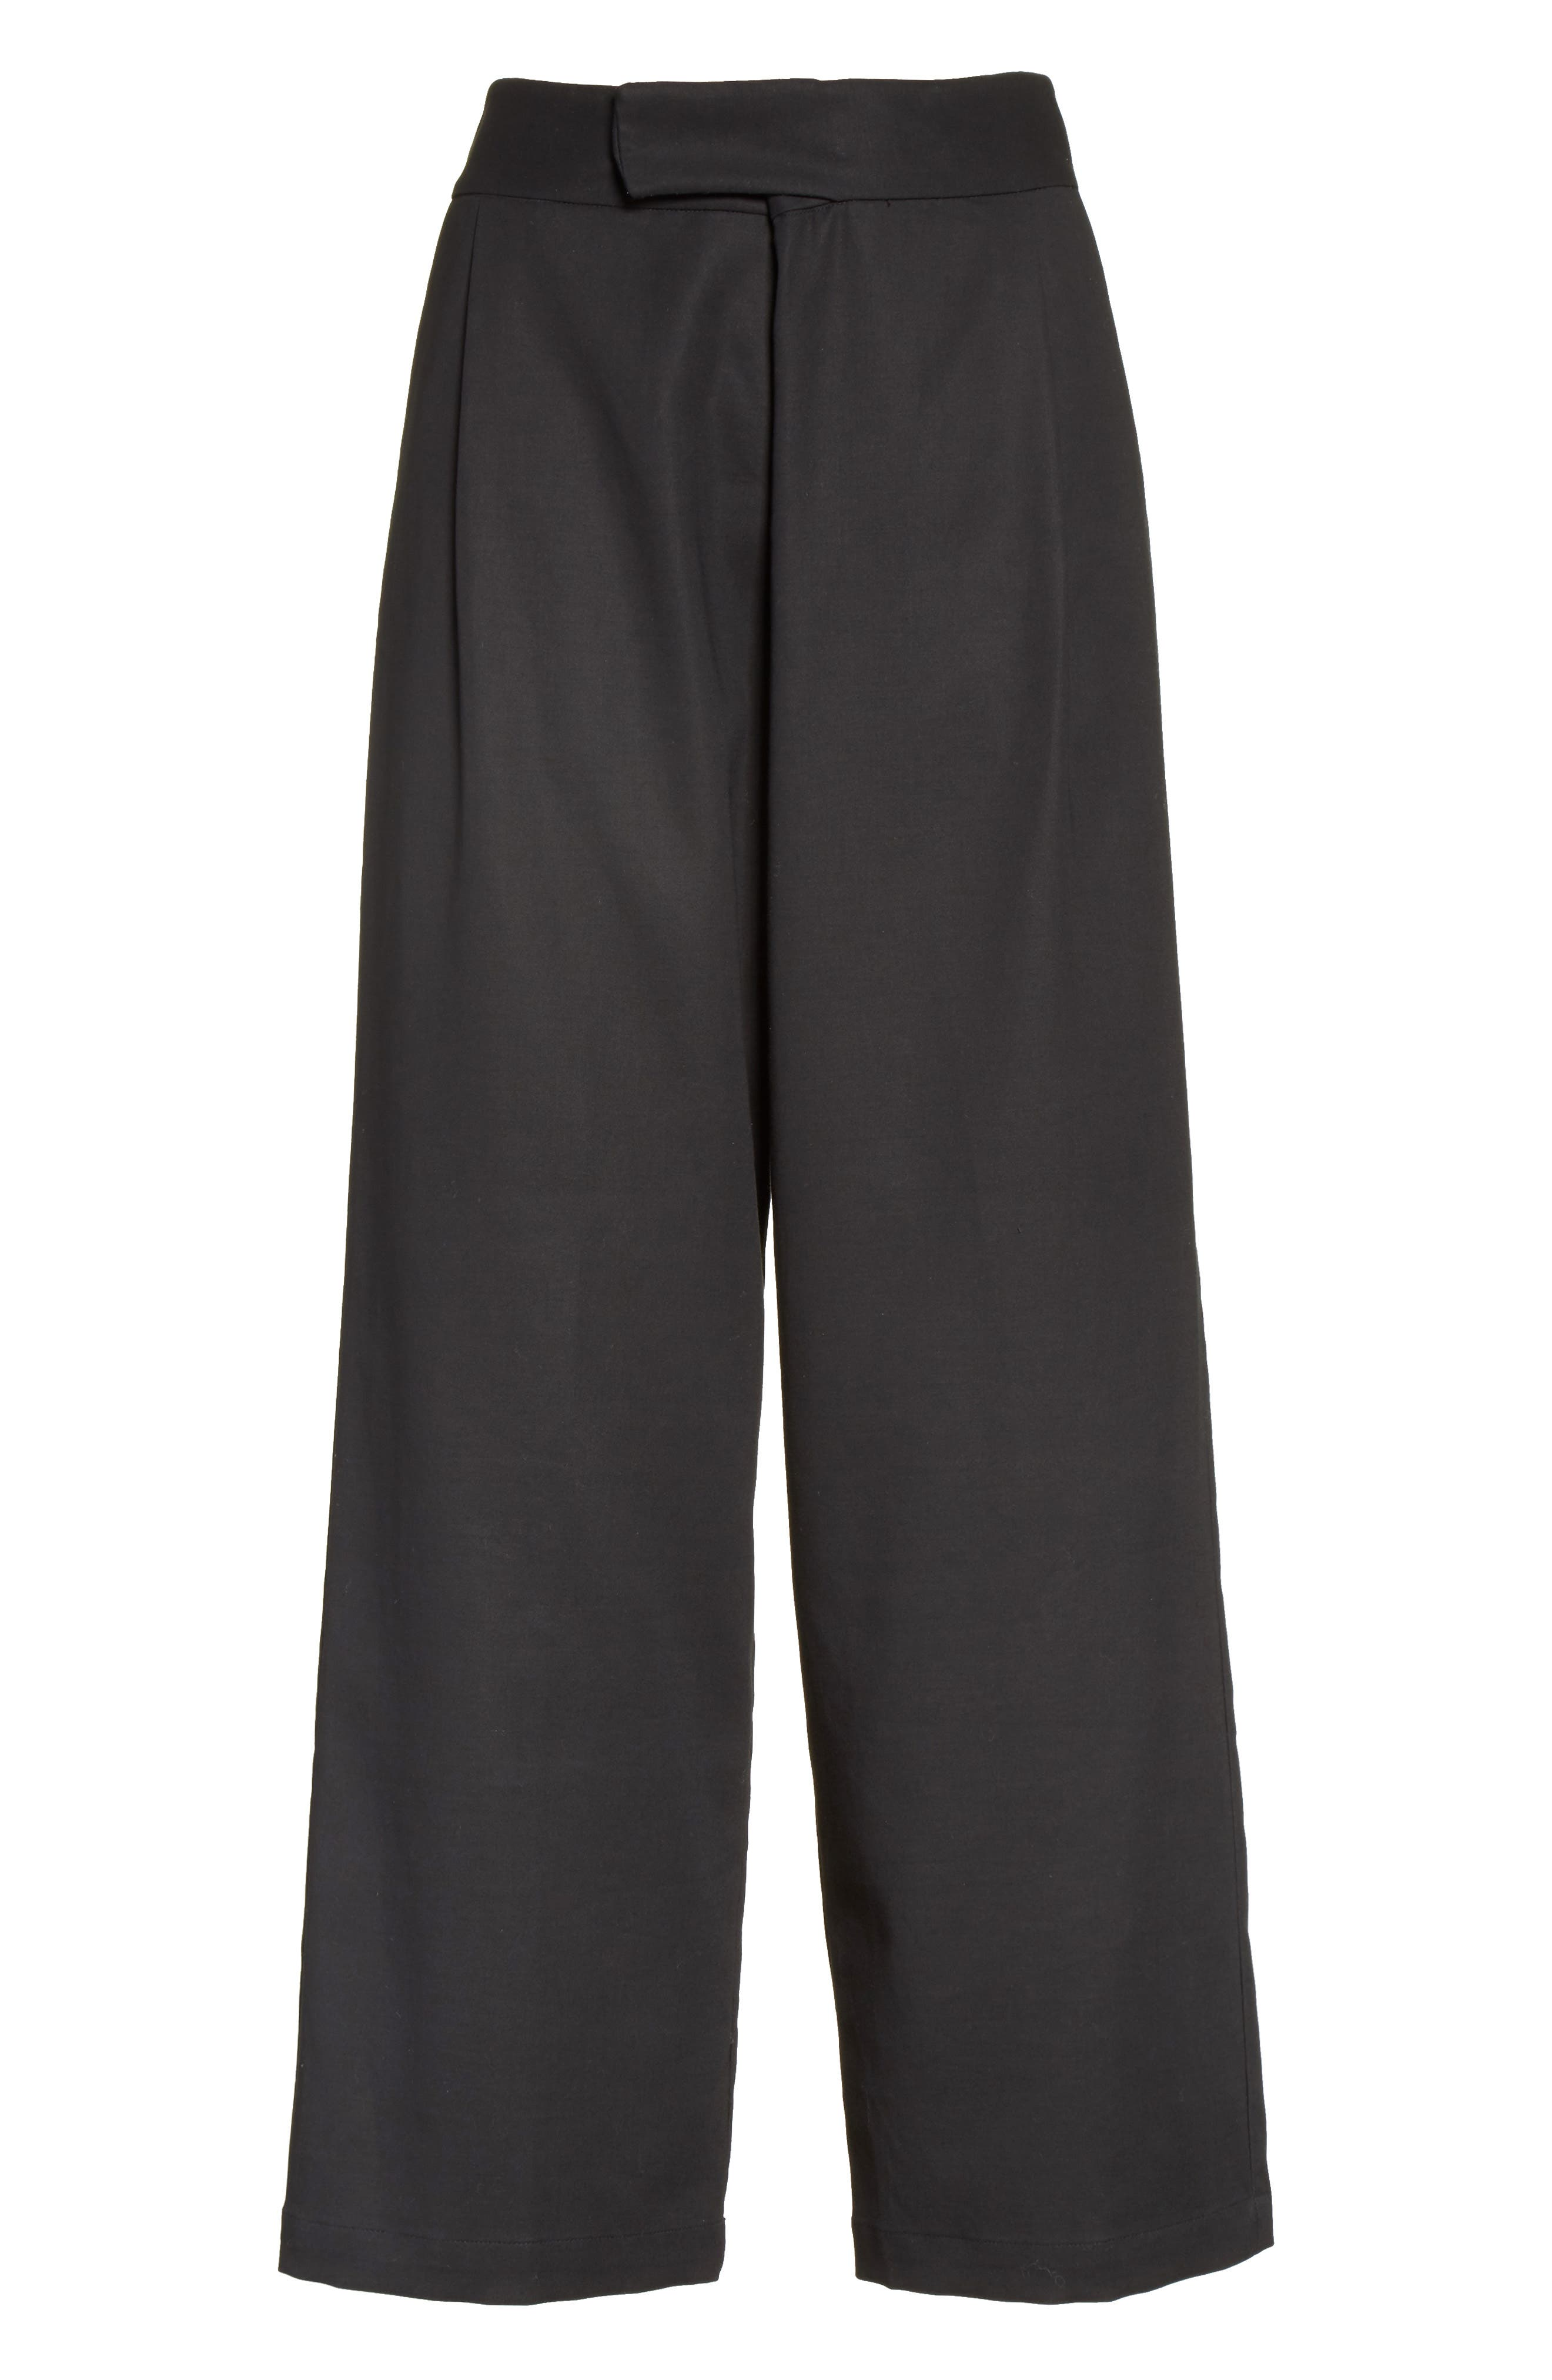 Gabardine Wrap Front Crop Pants,                             Alternate thumbnail 4, color,                             Black